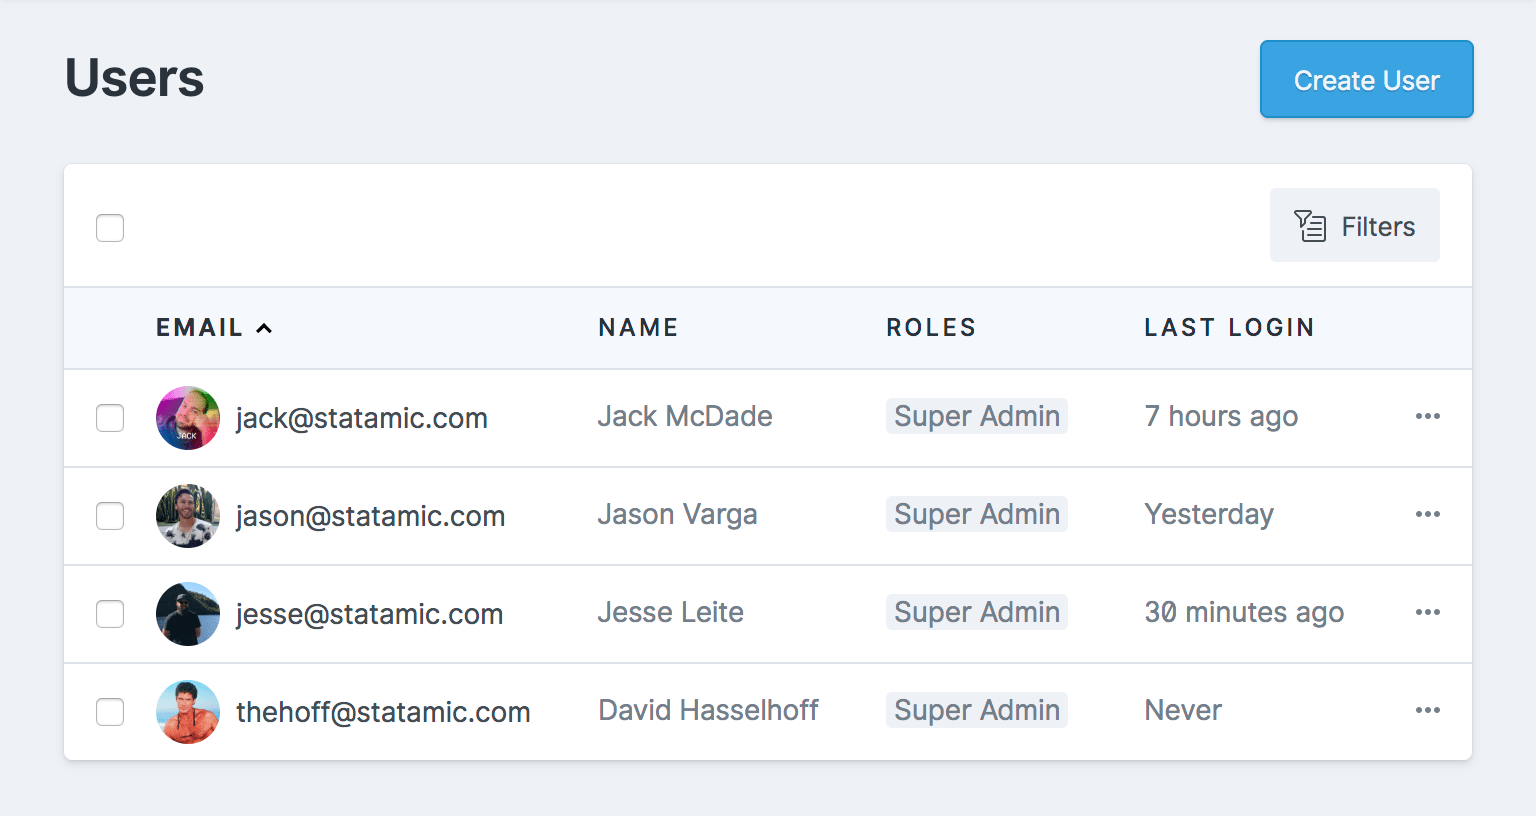 List of Statamic Control Panel users